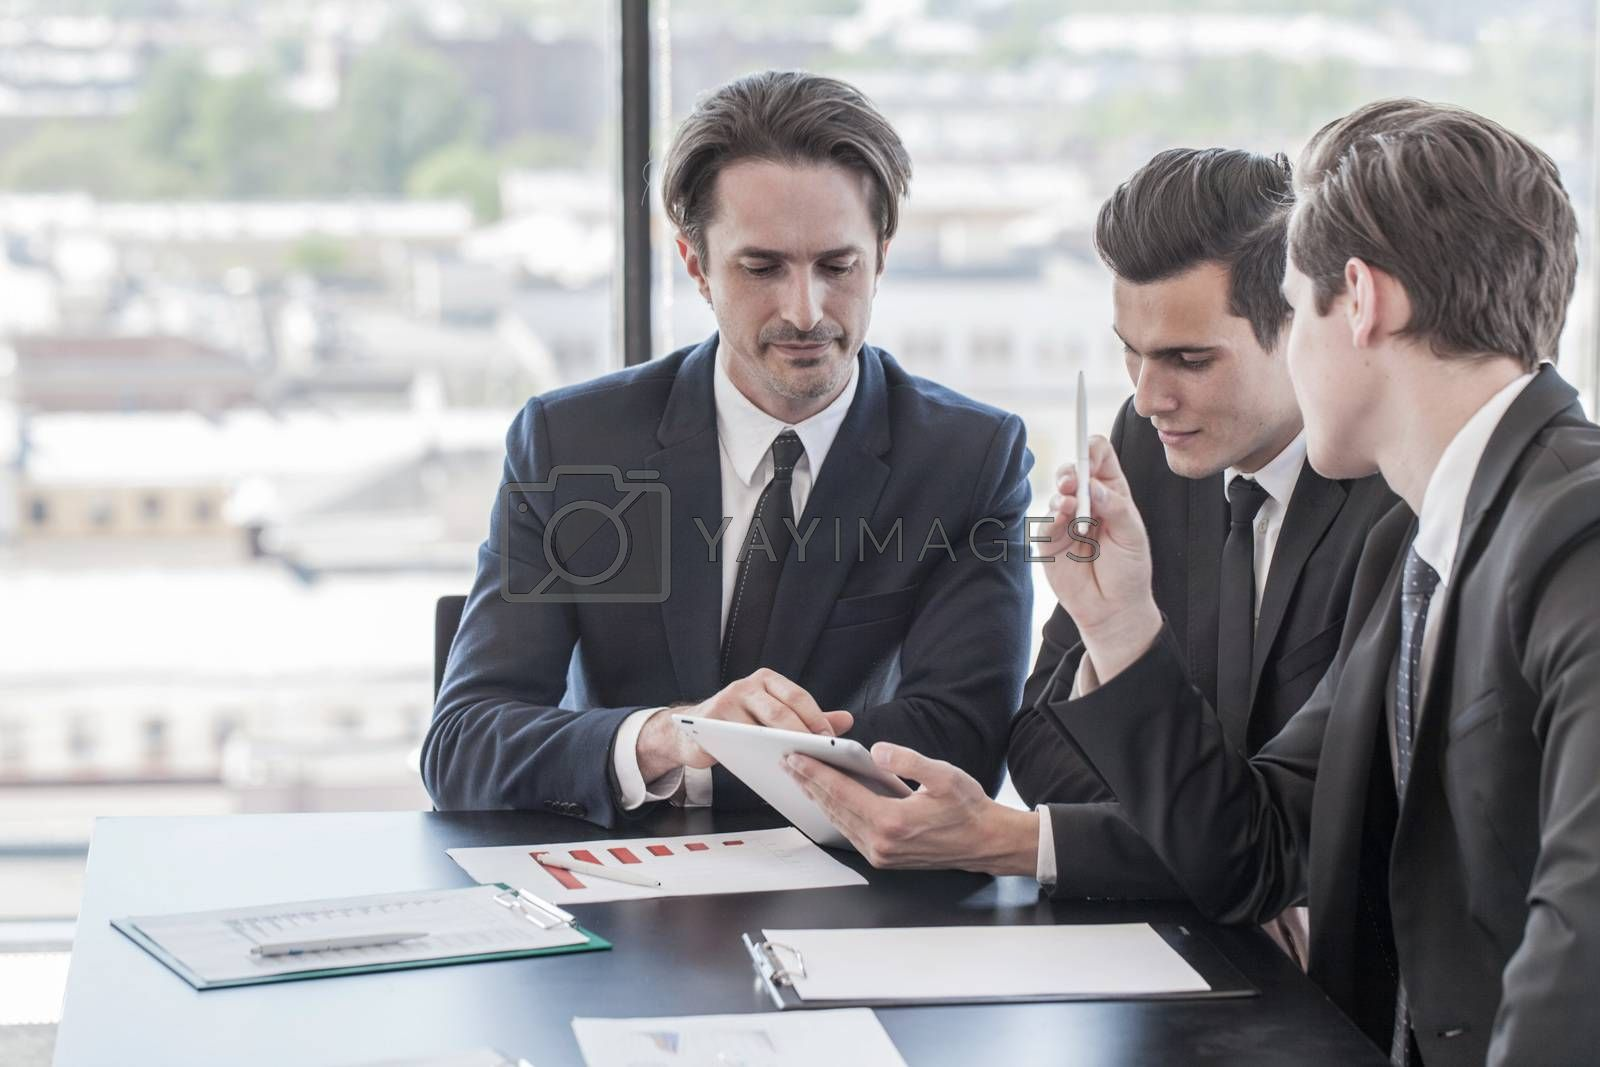 Businessmen working together in office with financial reports and digital tablet pc